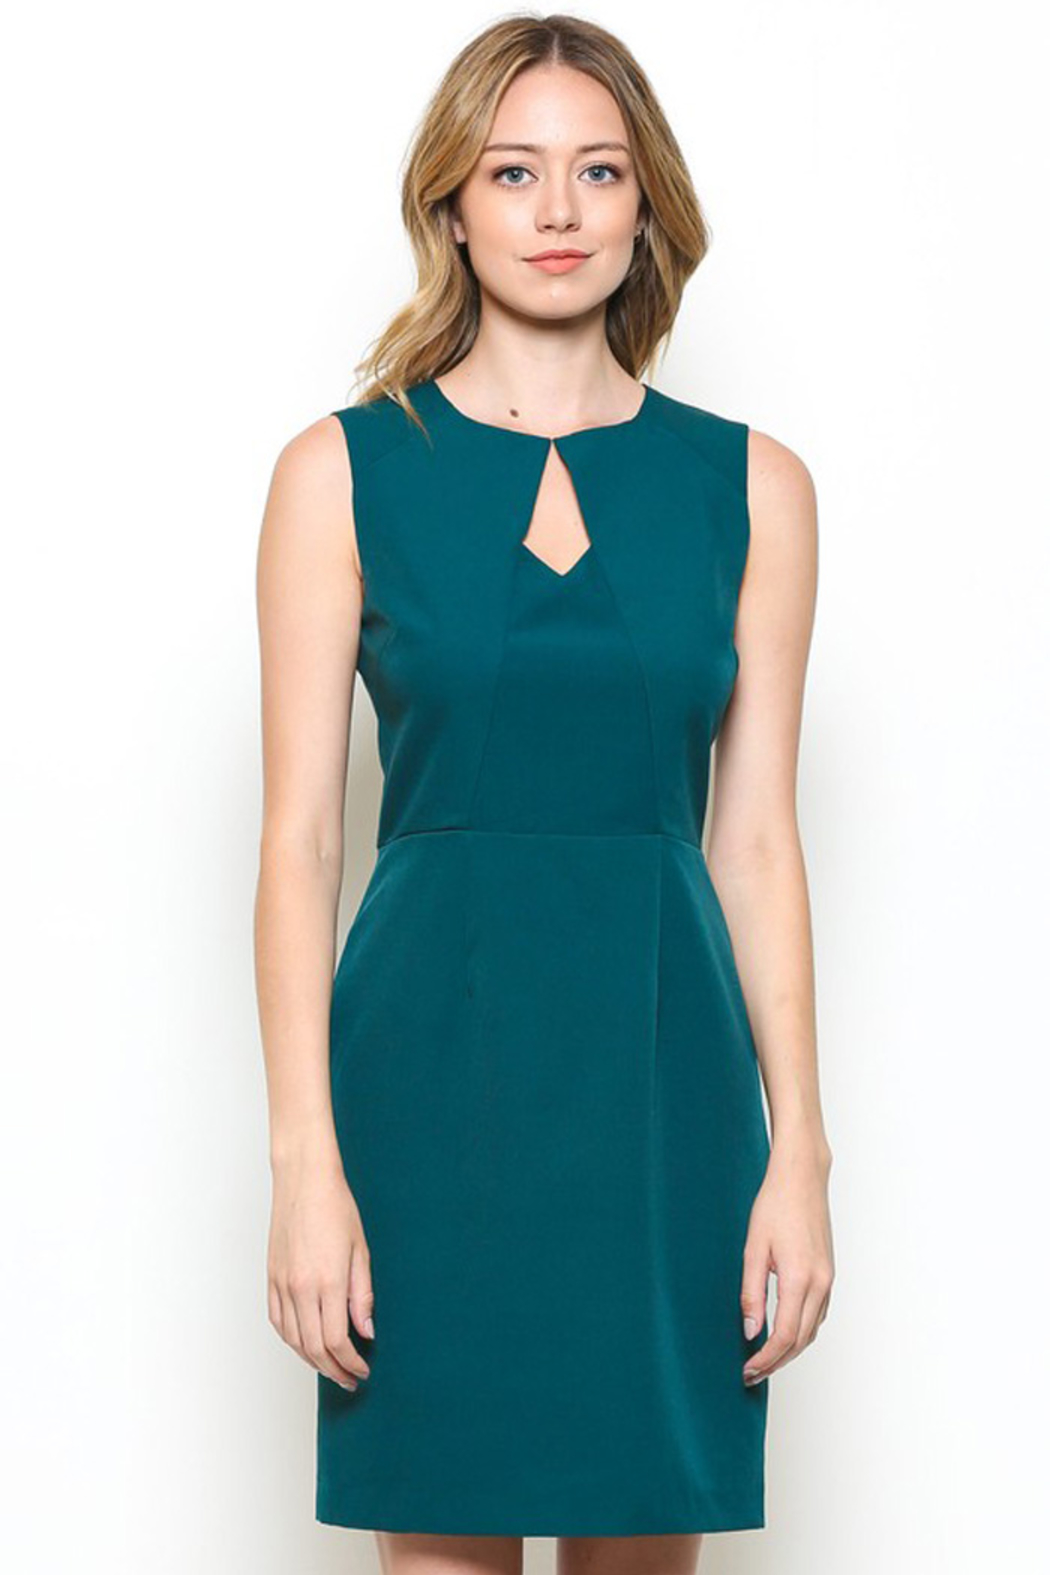 Esley Teal Sleeveless Sheath Dress with Front Cut-Out - Main Image